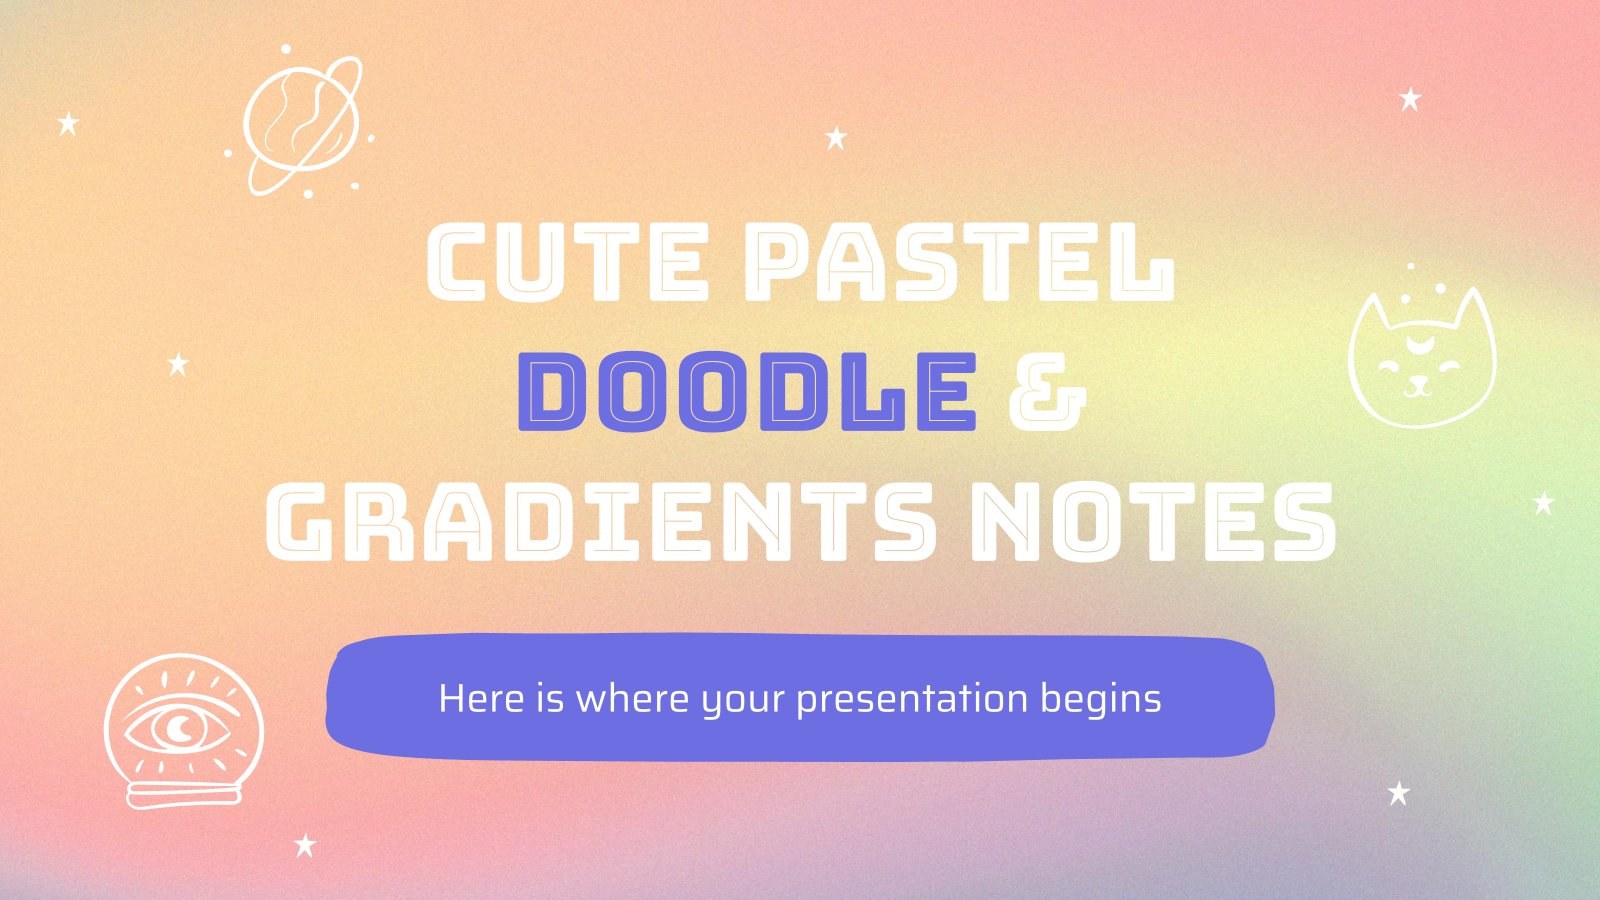 Cute Pastel Doodle & Gradients Notes presentation template